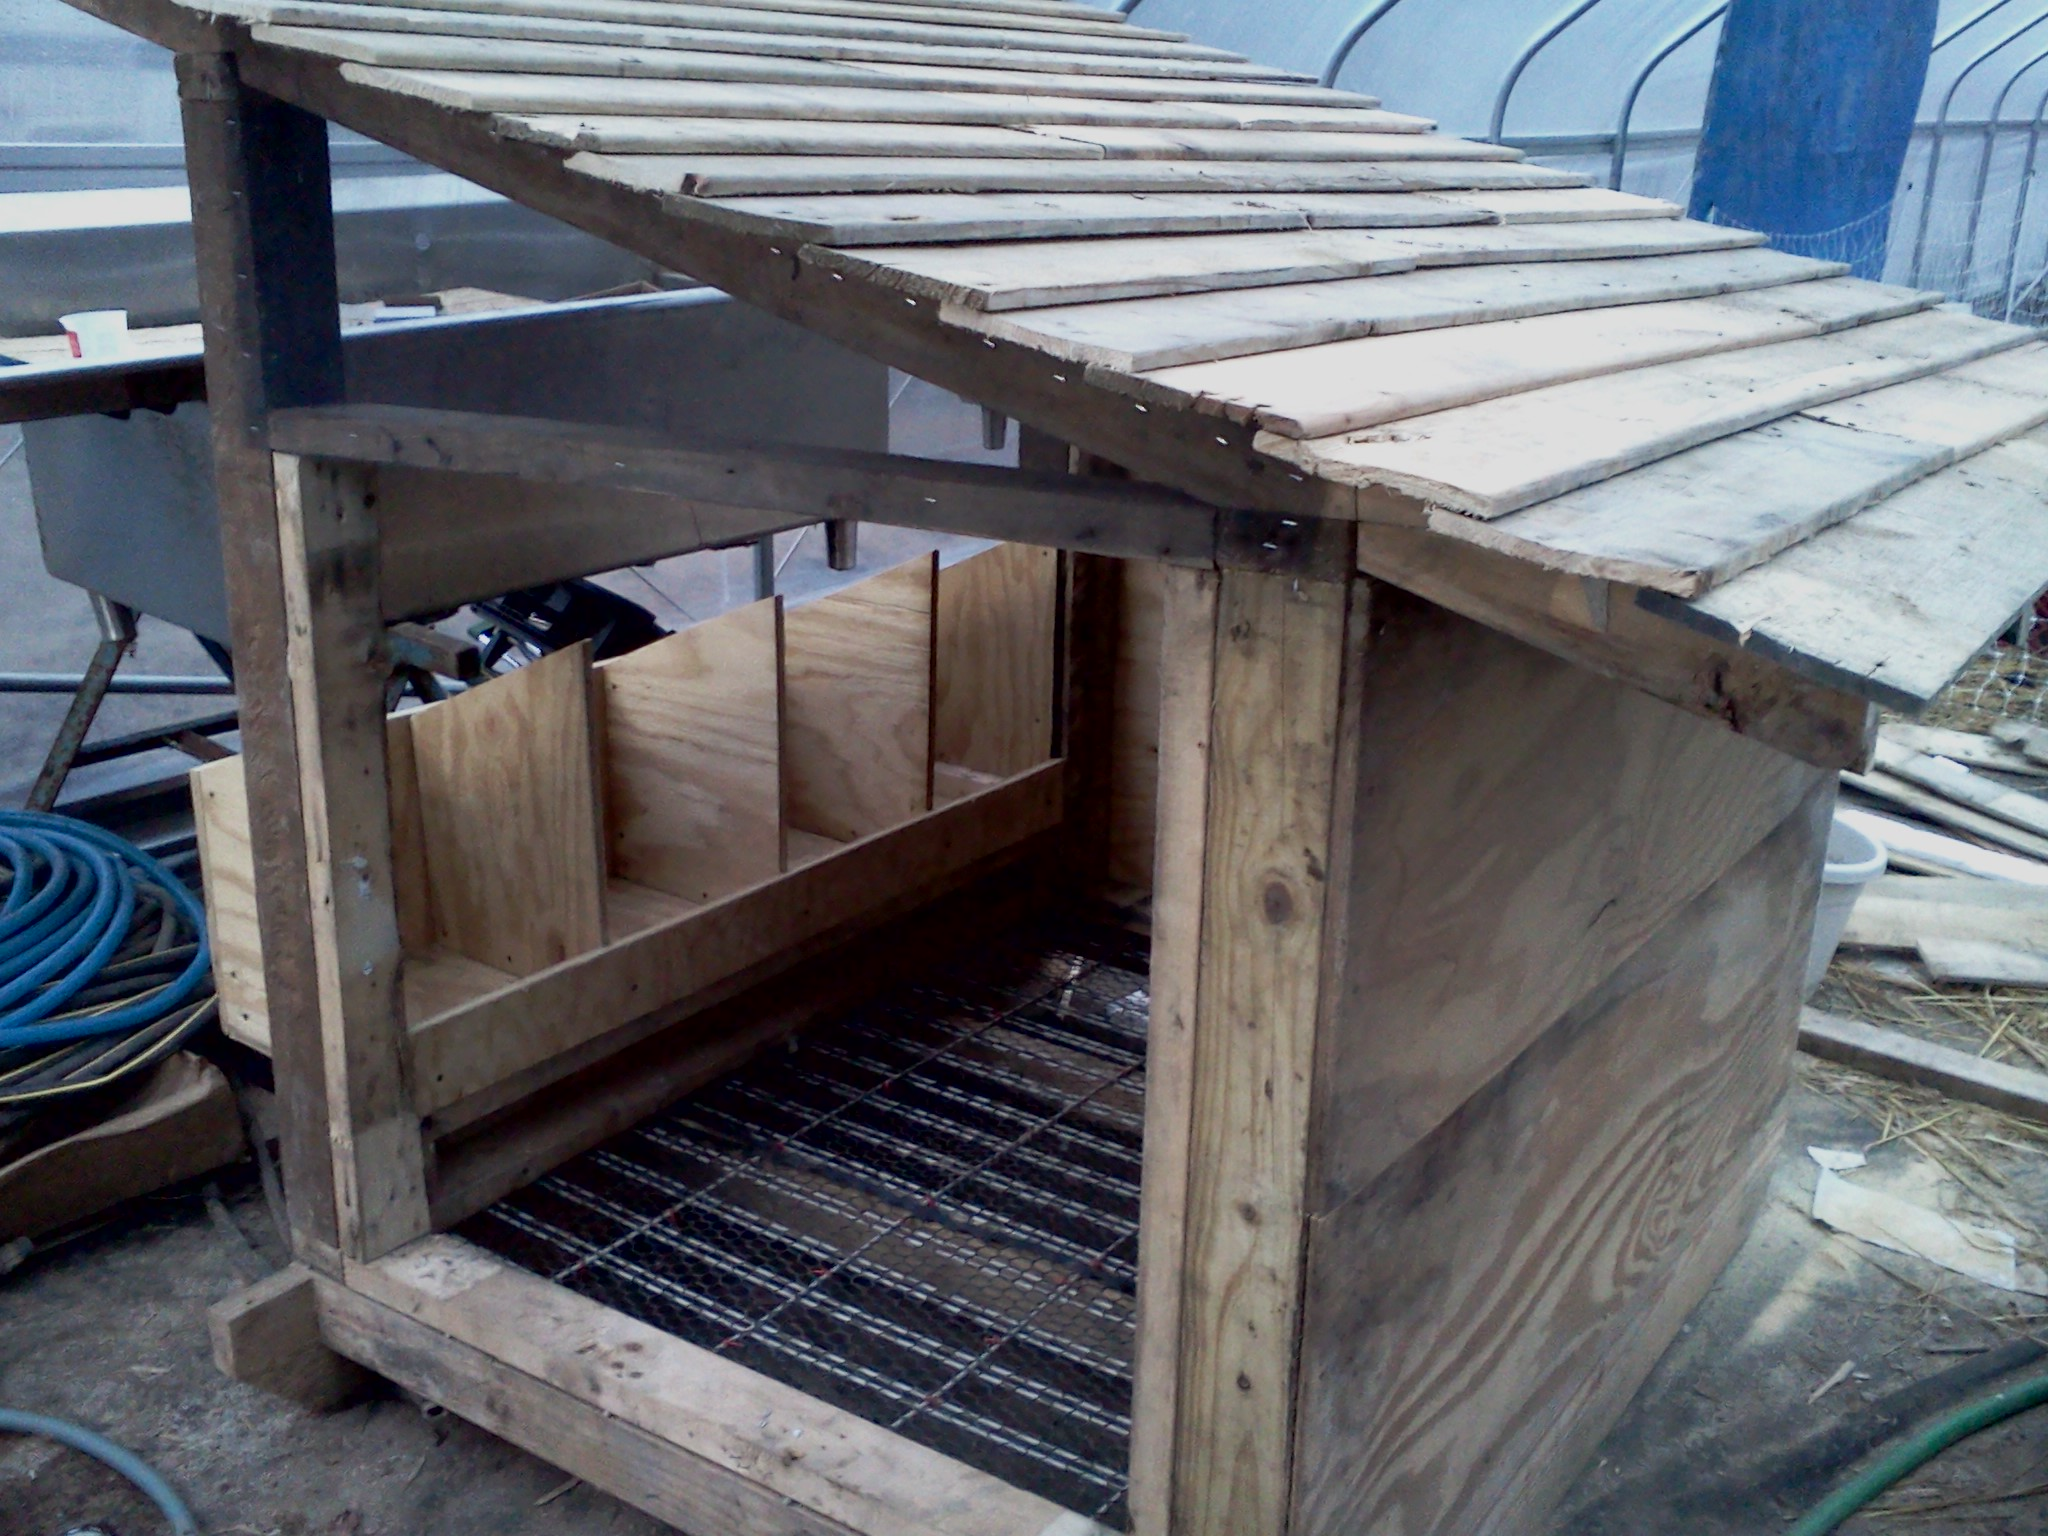 Coop with roof, nesting boxes, and partial walls